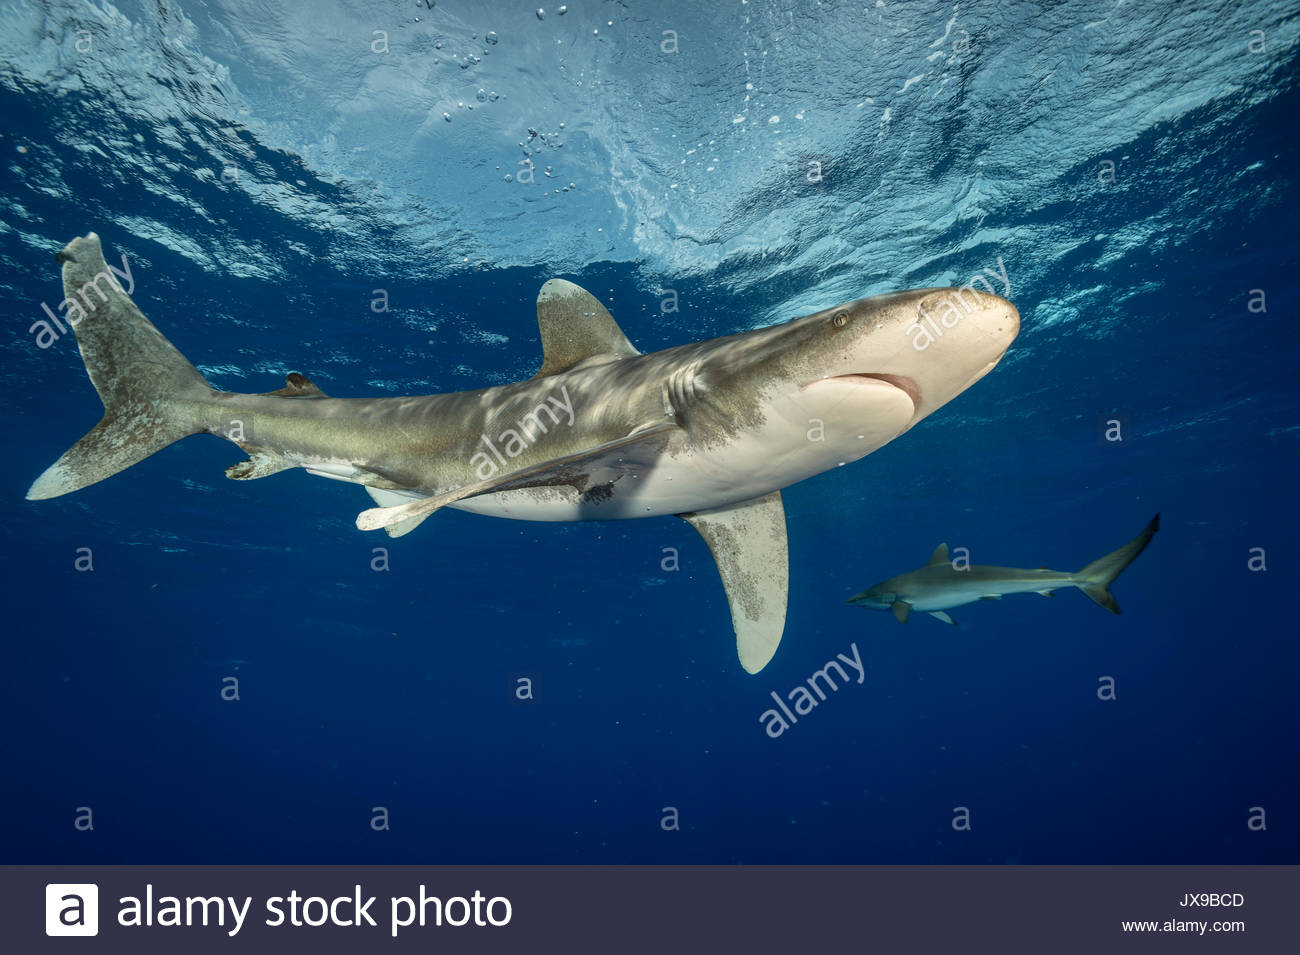 Oceanic whitetip shark, Carcharhinus longimanus, swims in the waters off Cat Island in the Bahamas. - Stock Image